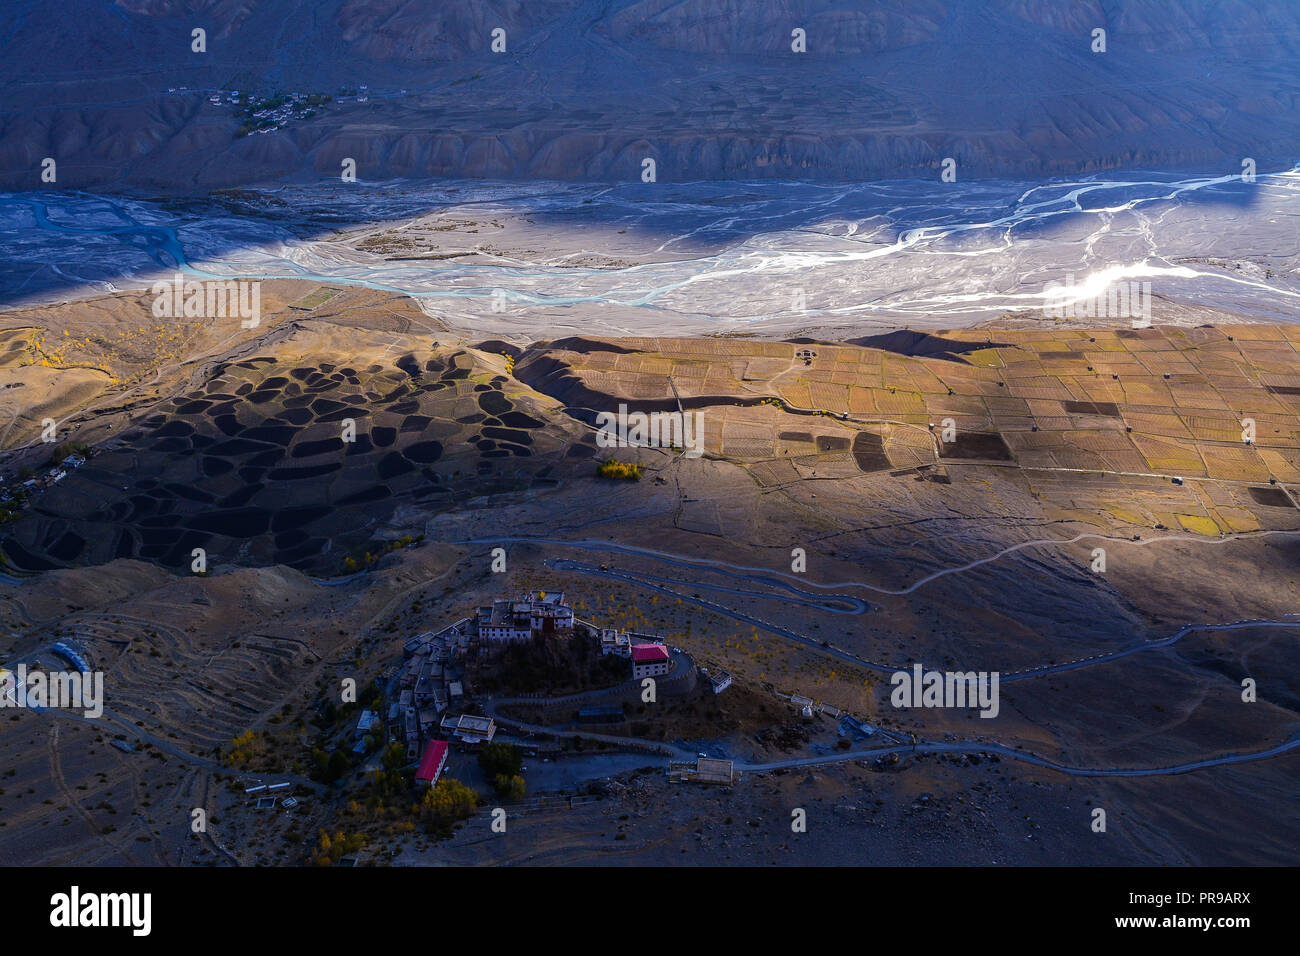 Aerial view of Ki Monastery in Spiti Valley, Himachal Pradesh. - Stock Image